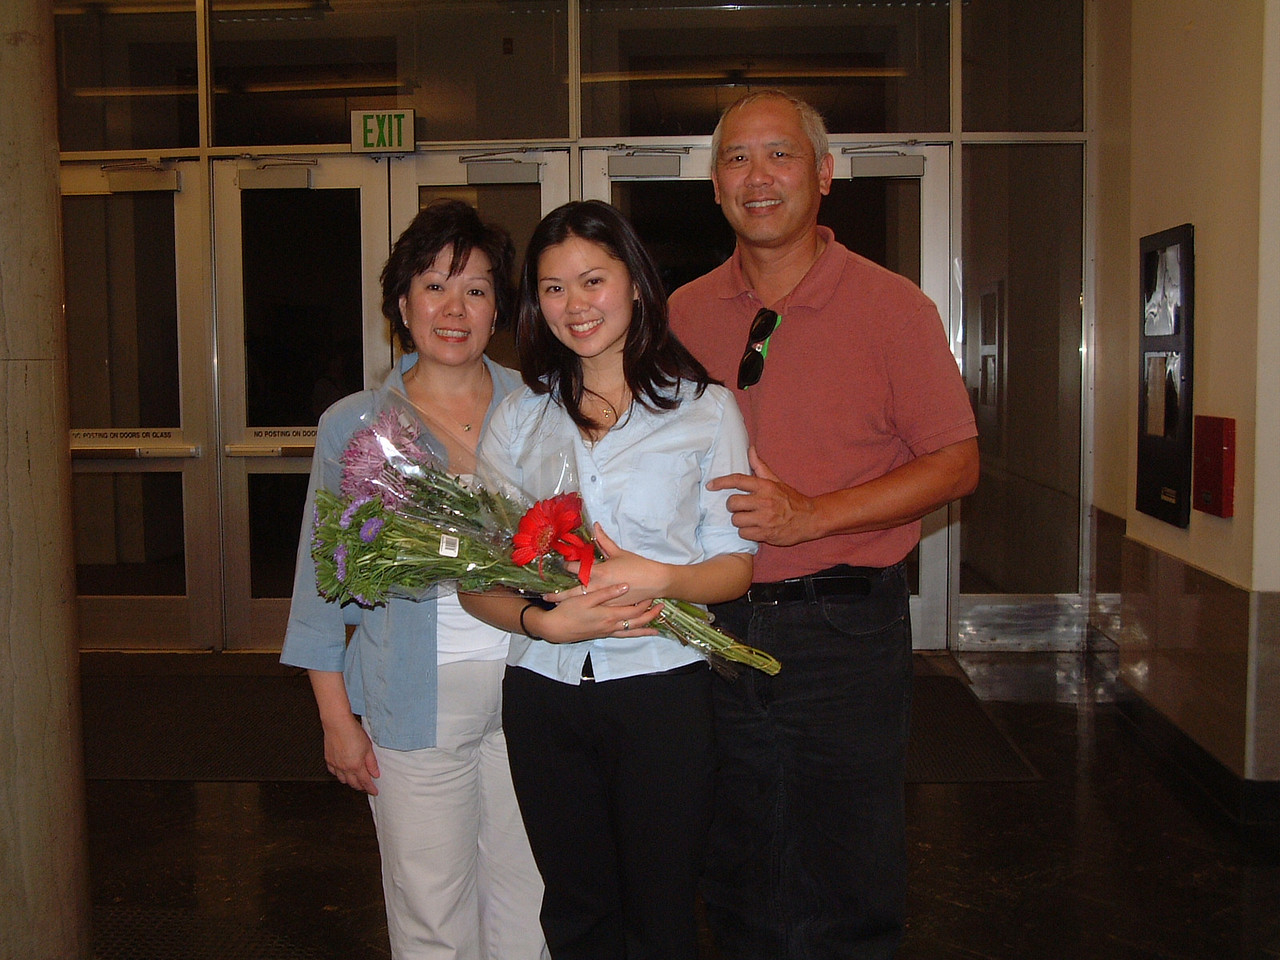 Tiffany, mom, & dad